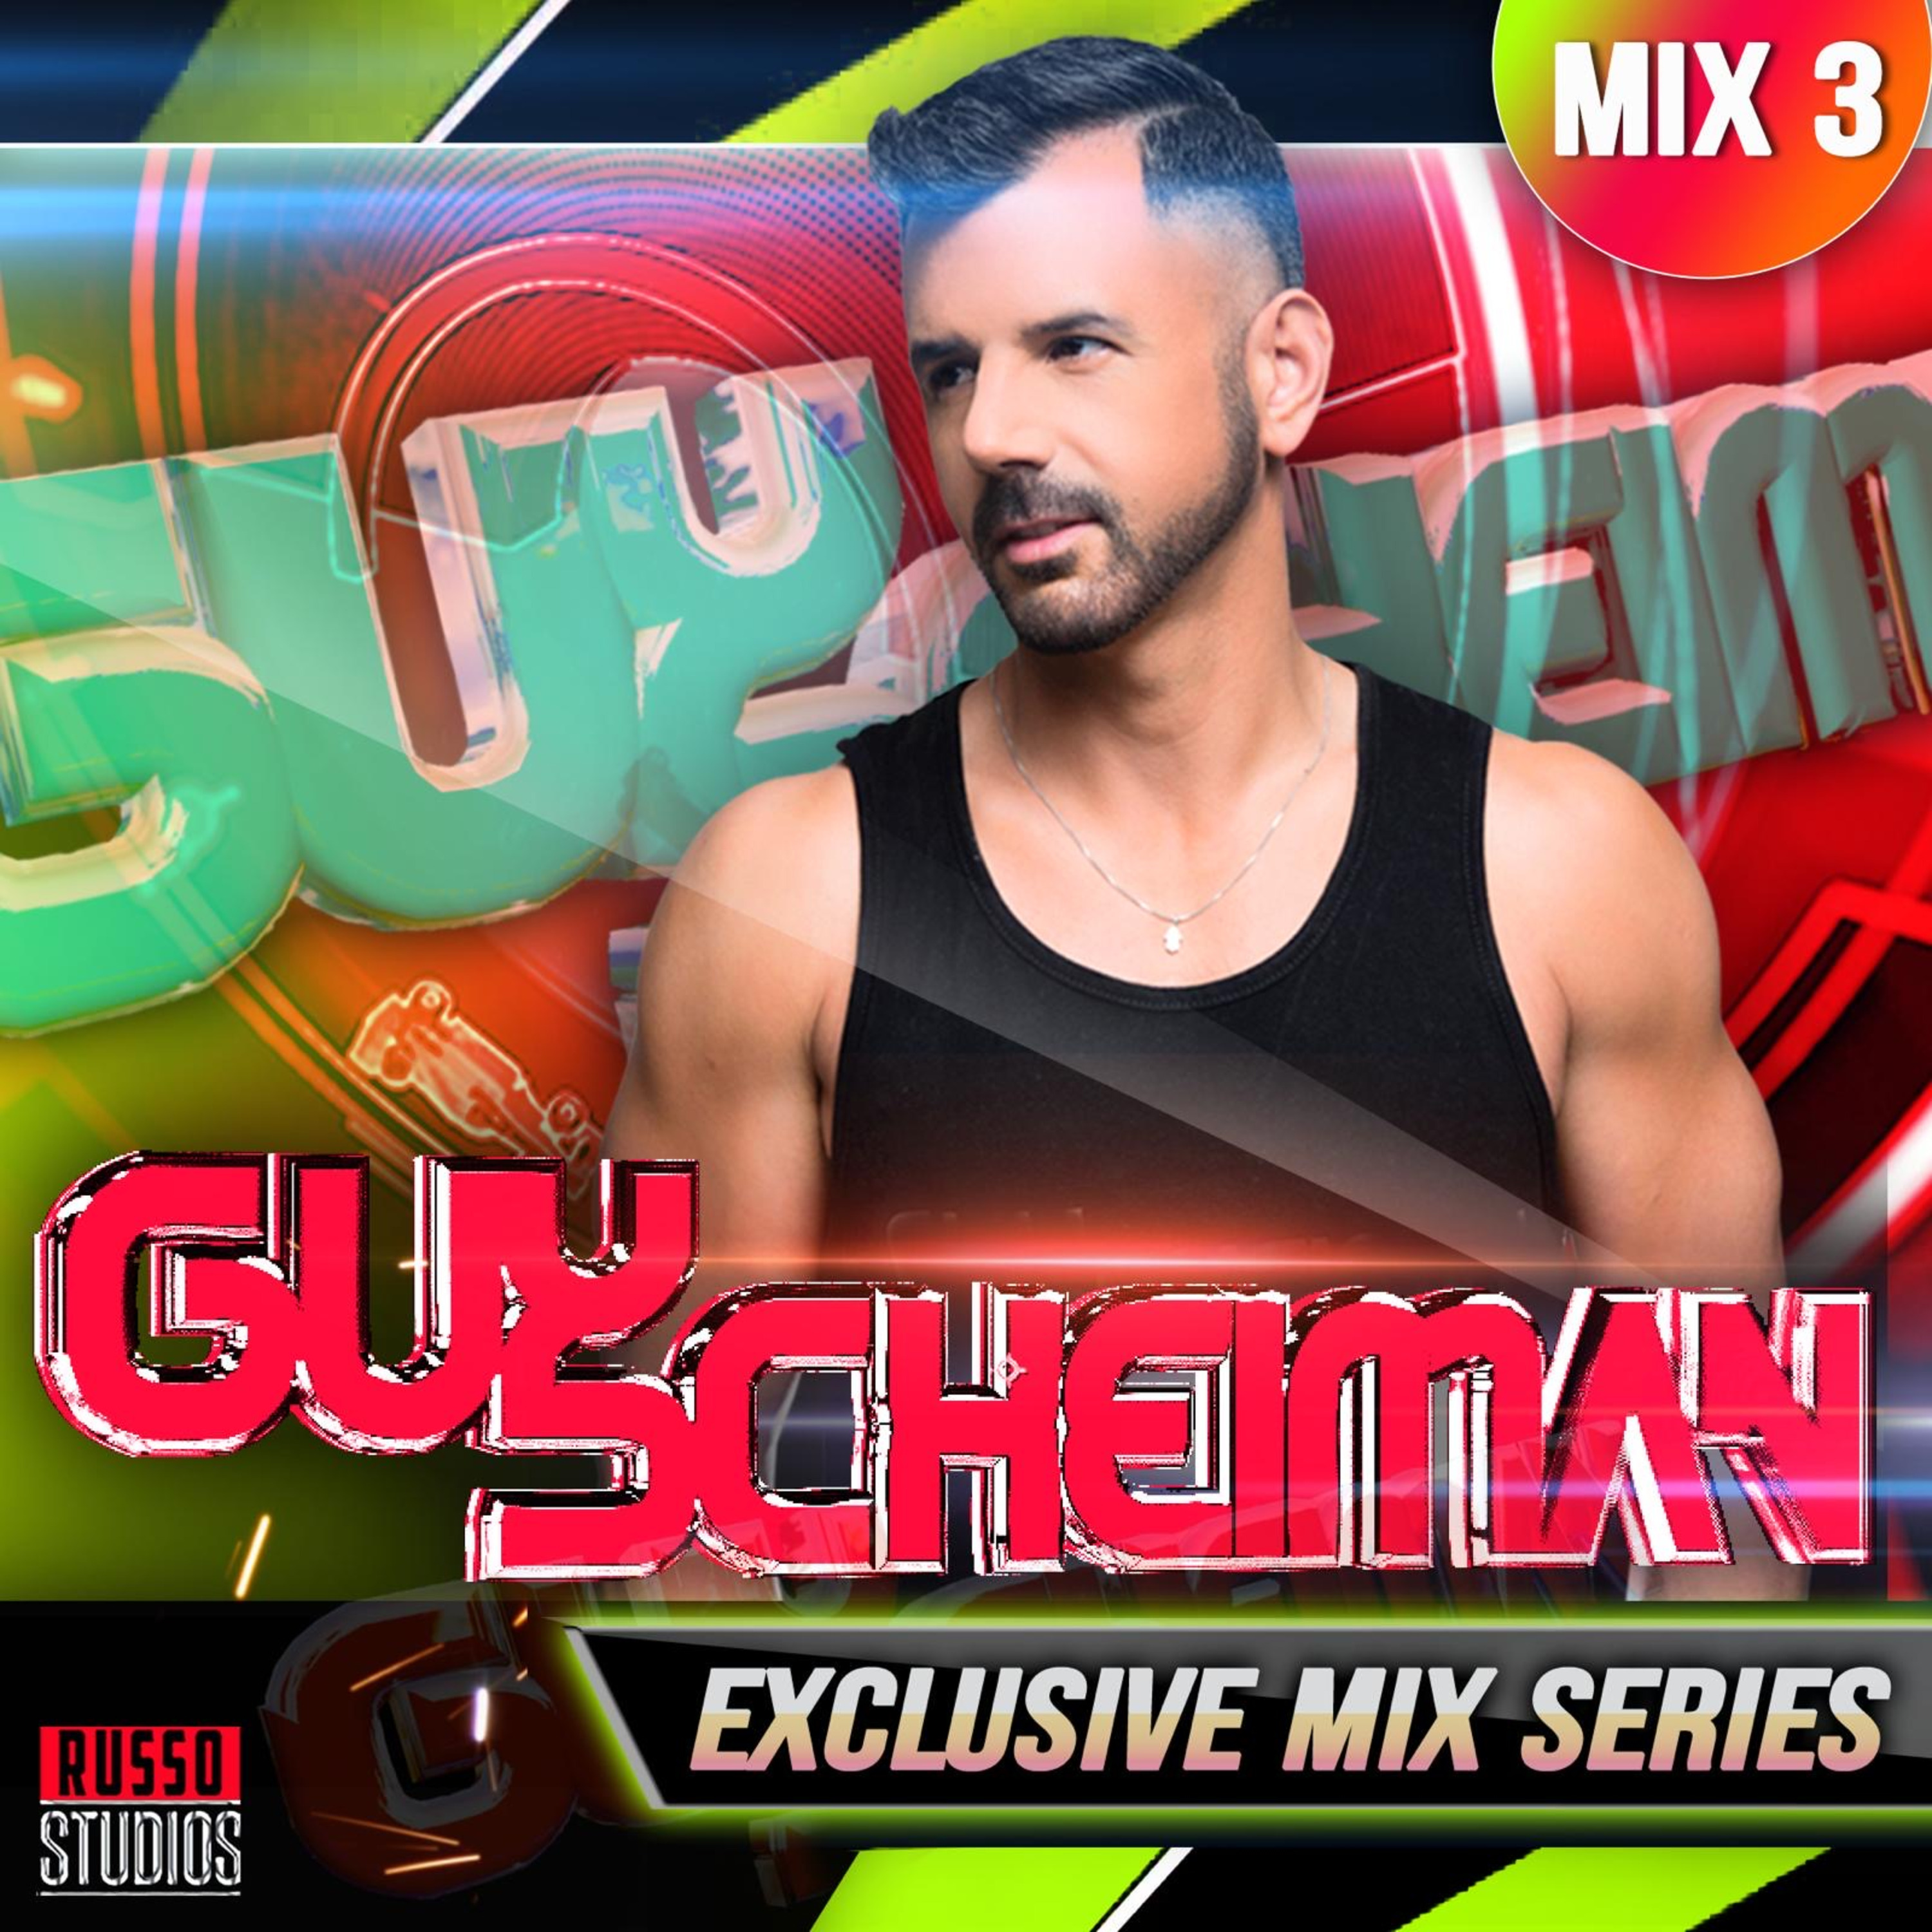 Guy Scheiman Exclusive Mix 3 - Out Traveler Halloween Feature Podcast